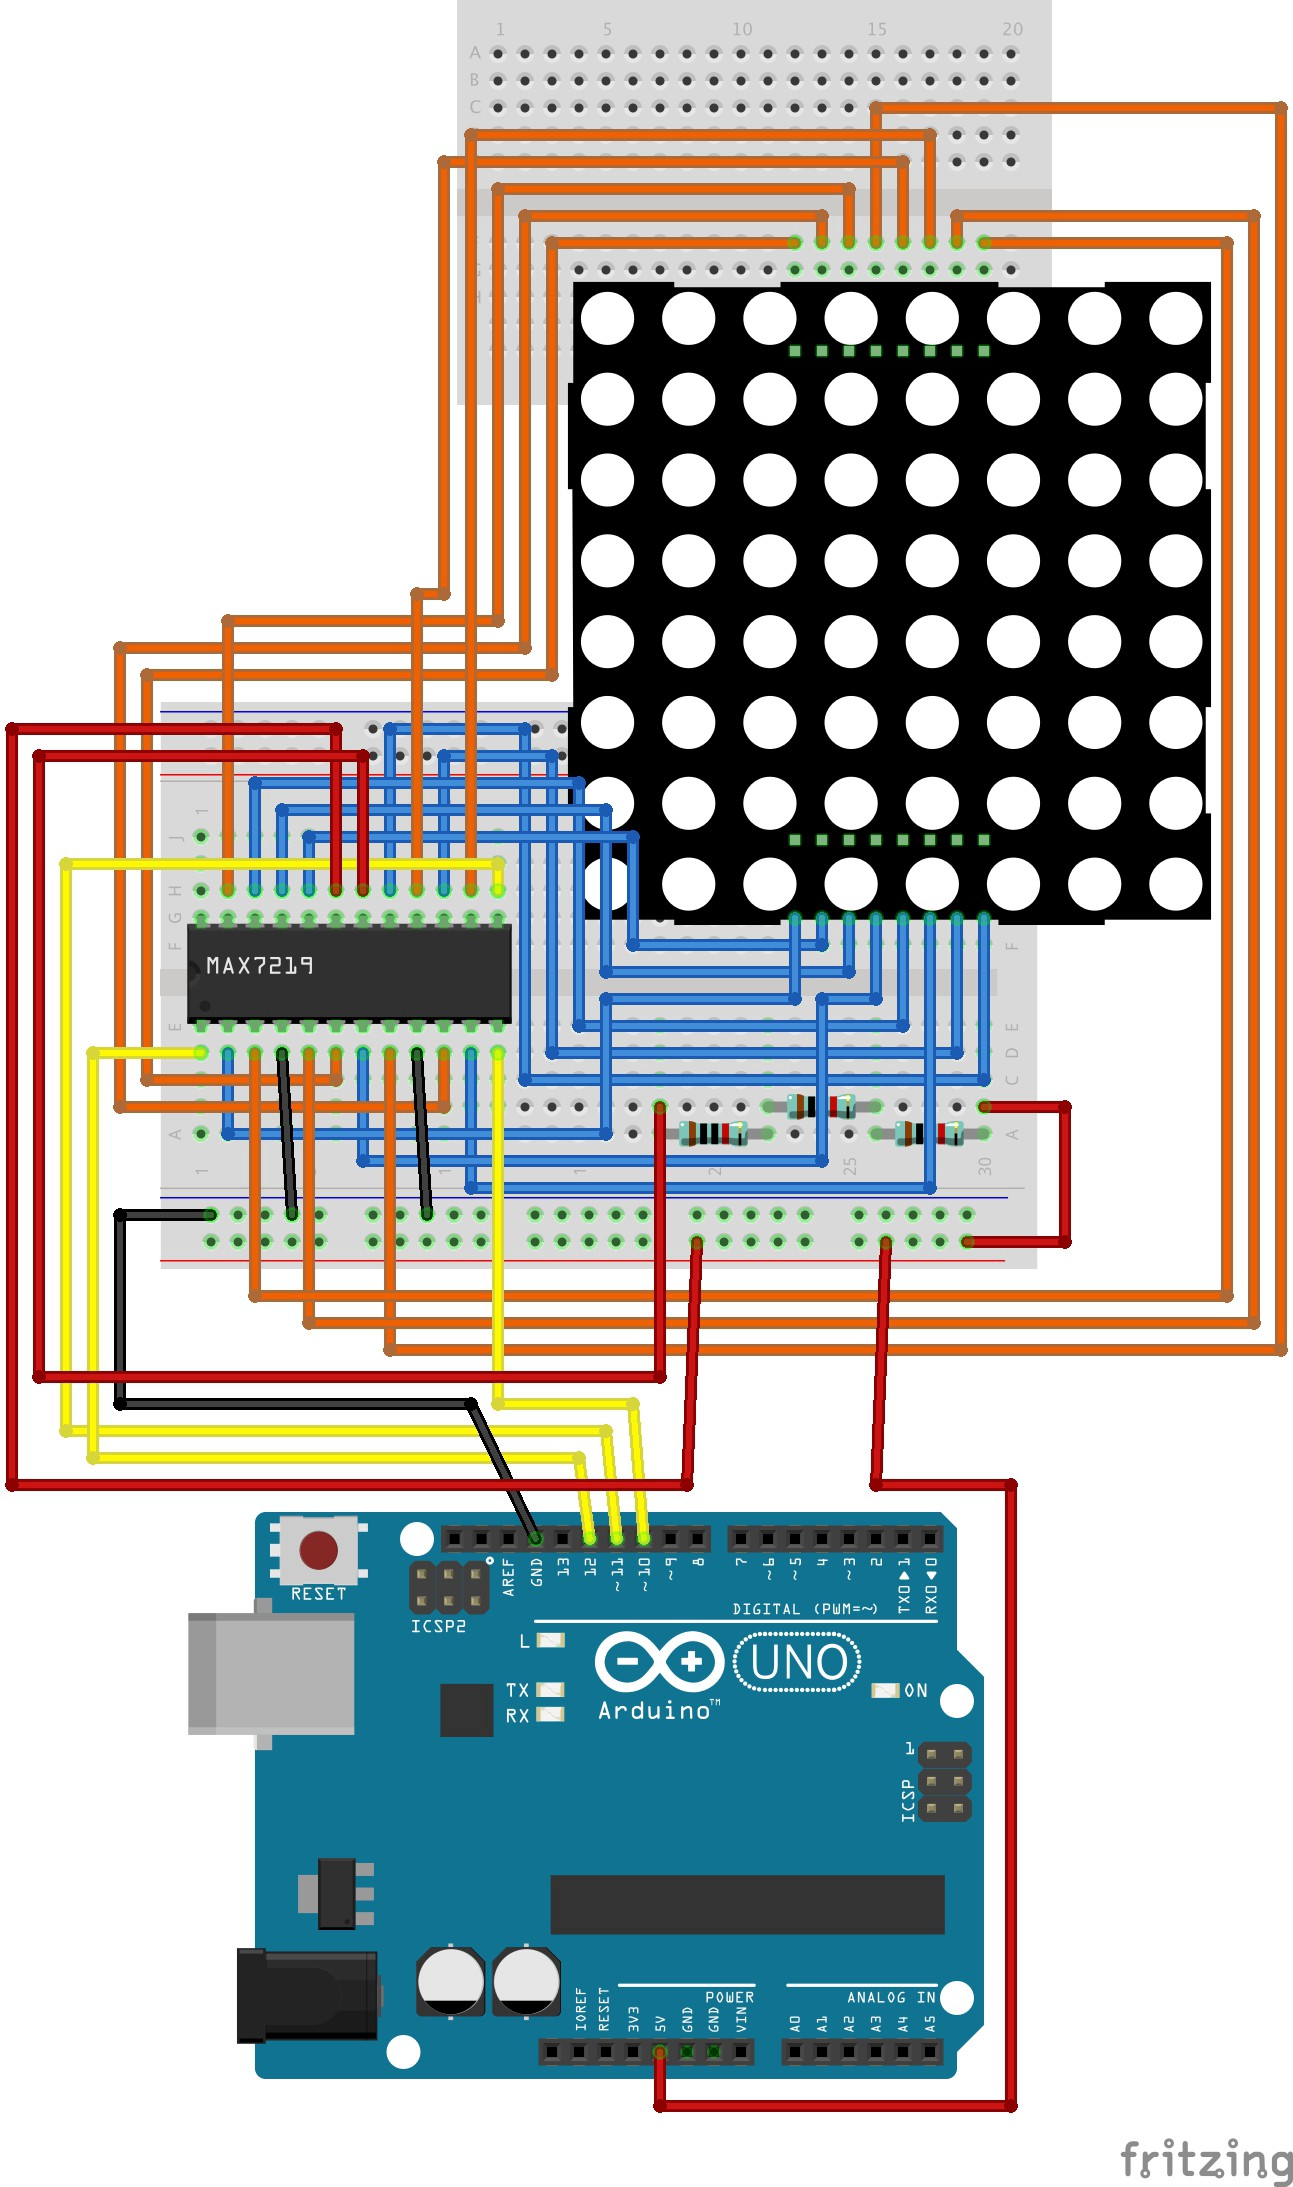 Arduino Led Matrix 88 Max7219 And Uno R3 Voltage Power Supply Circuit Furthermore 1 Watt Driver The Is Quite Straight Forward Except We Have A Resistor Between 5v Pin 18 Constant Current Value